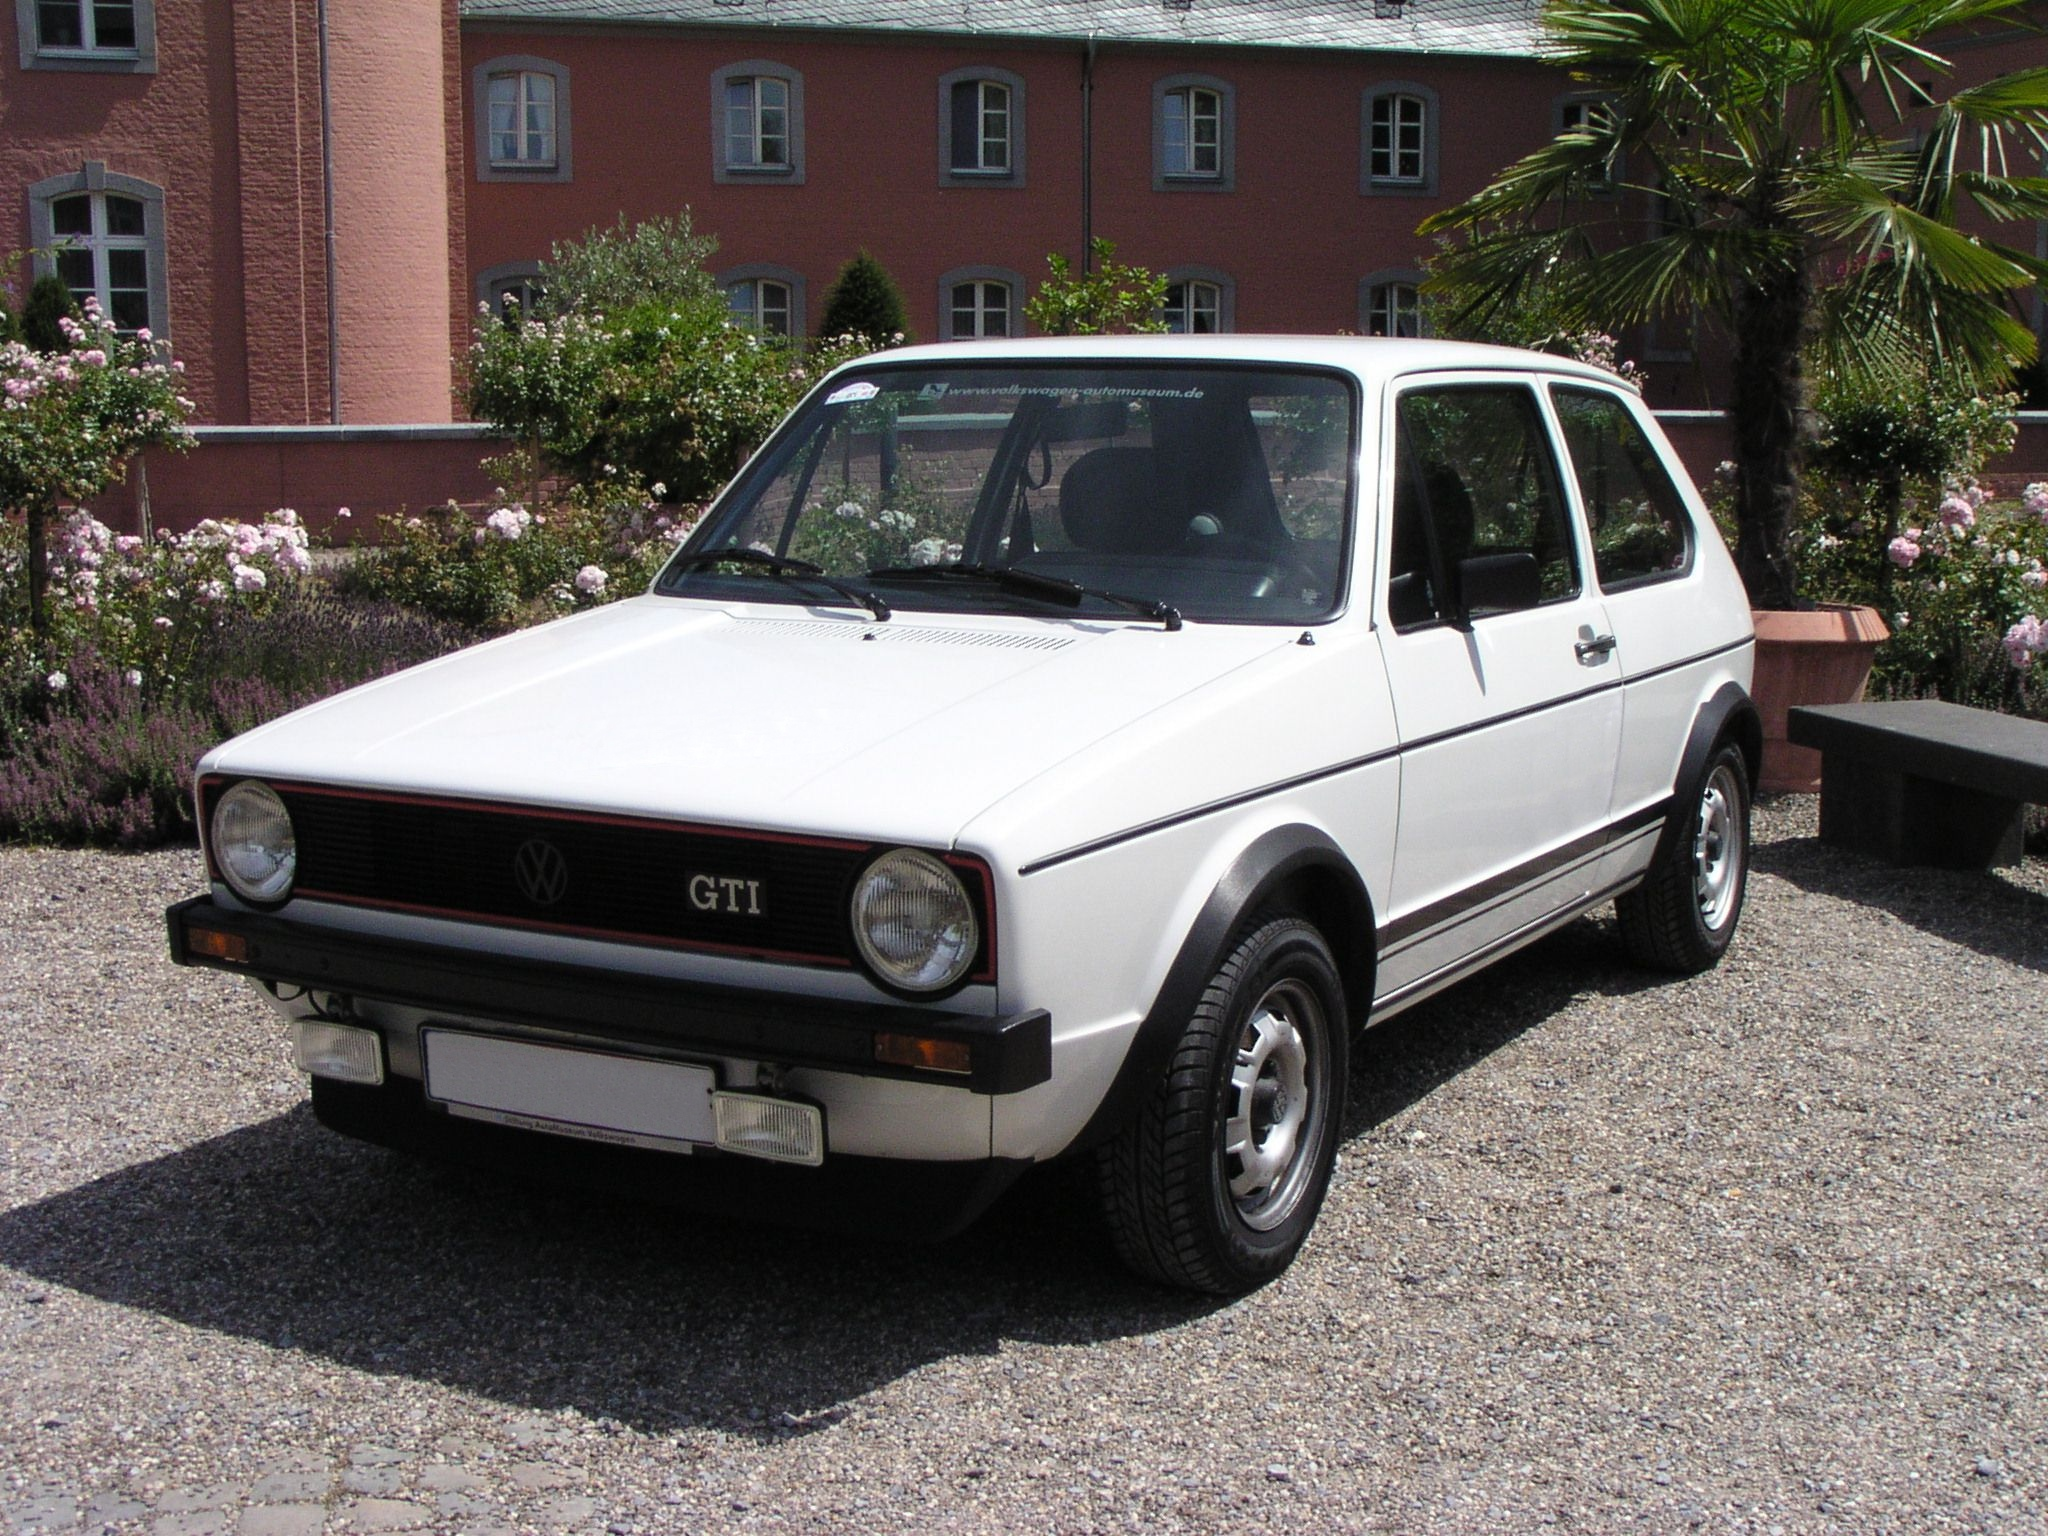 Slike Golf 2 GTI http://en.wikipedia.org/wiki/File:P089_VW_Golf_1_GTi_2.jpg